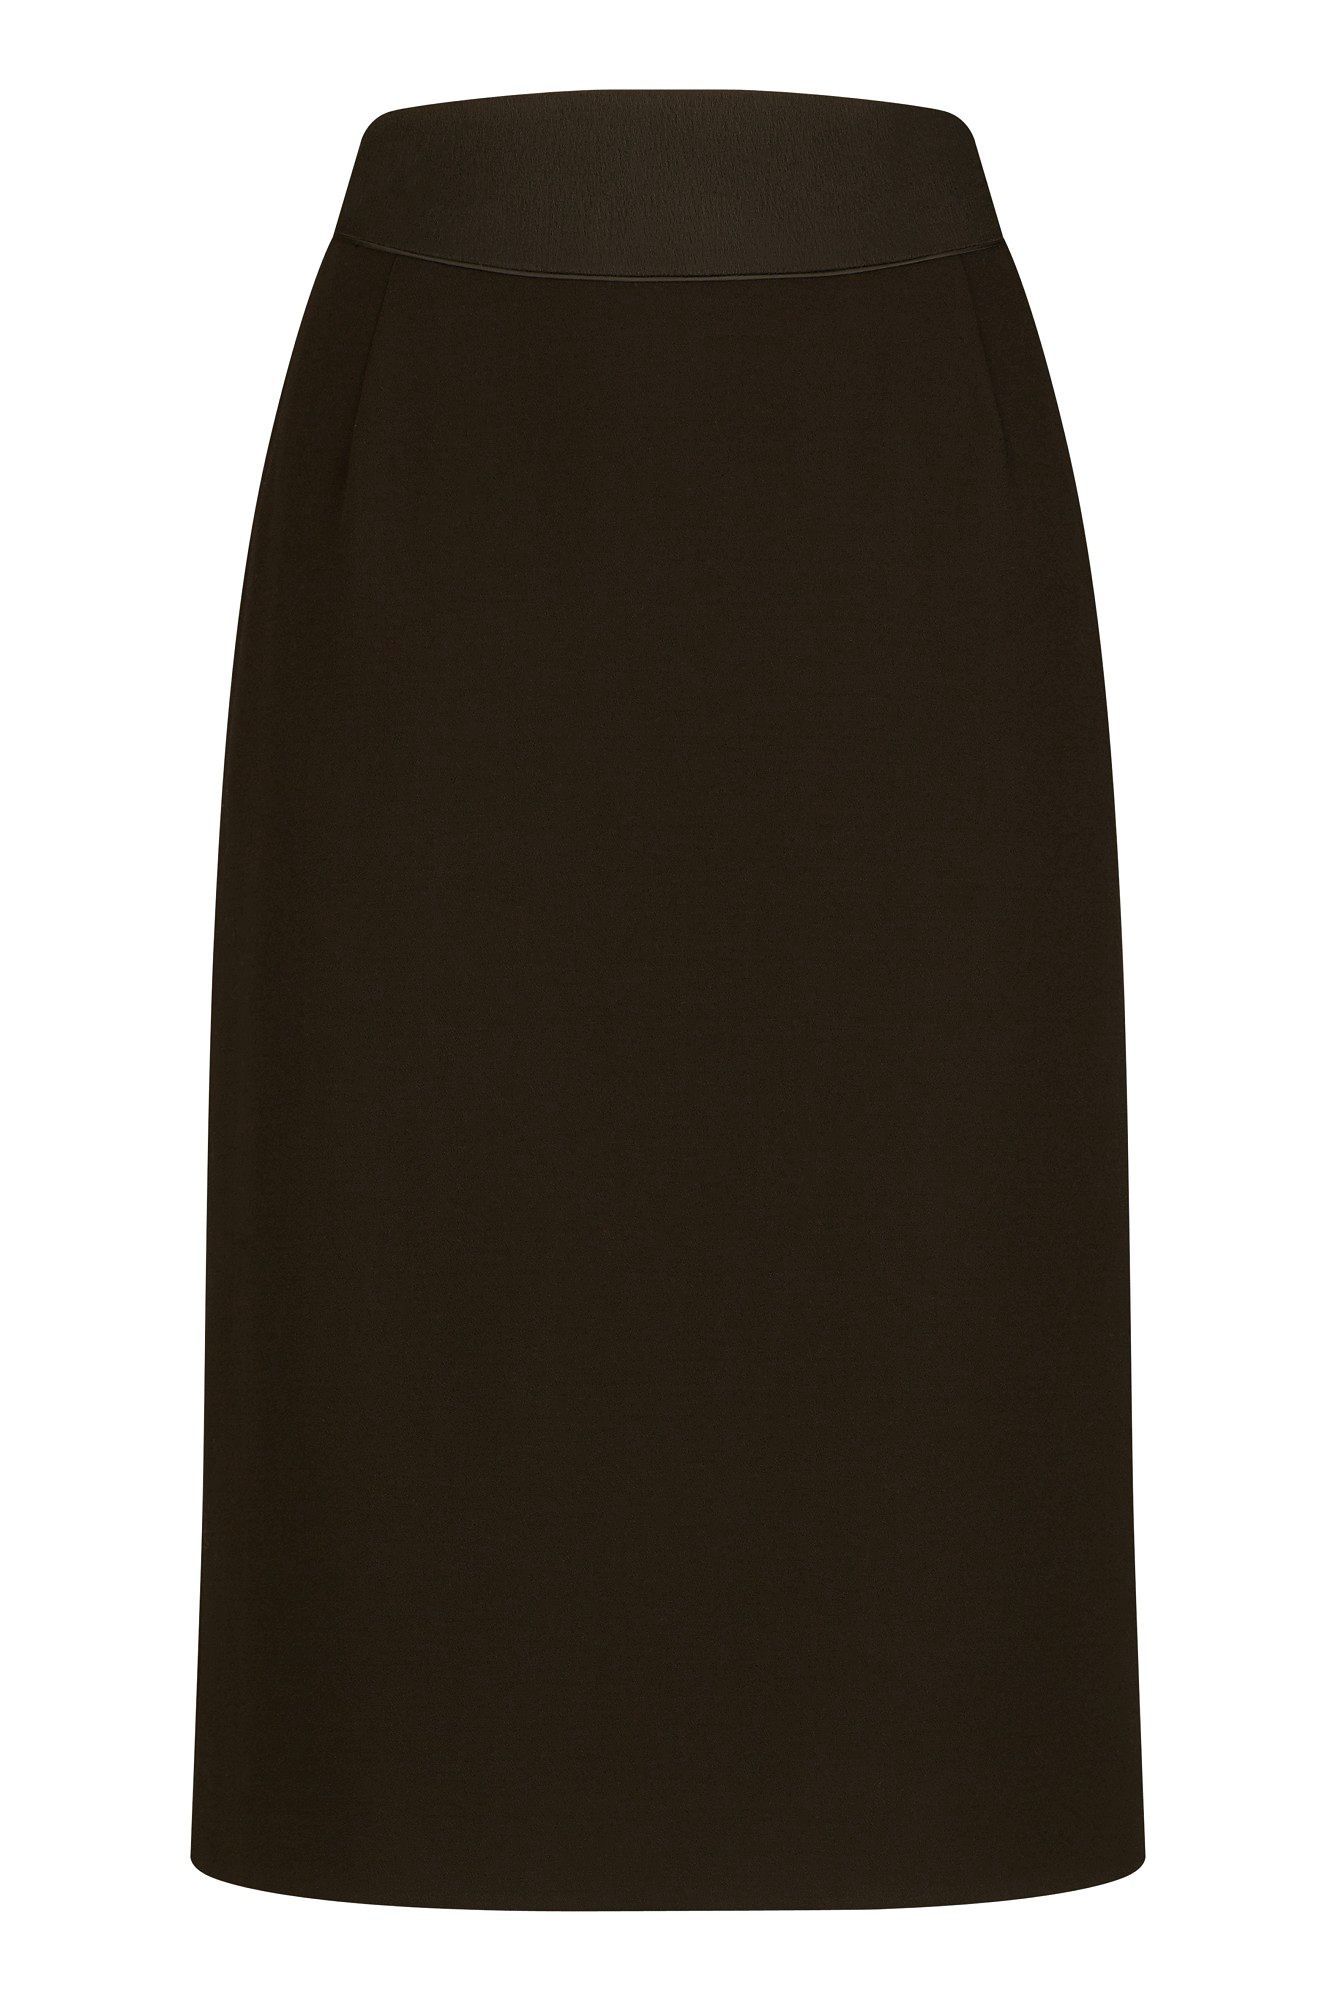 Crepe basque pencil skirt